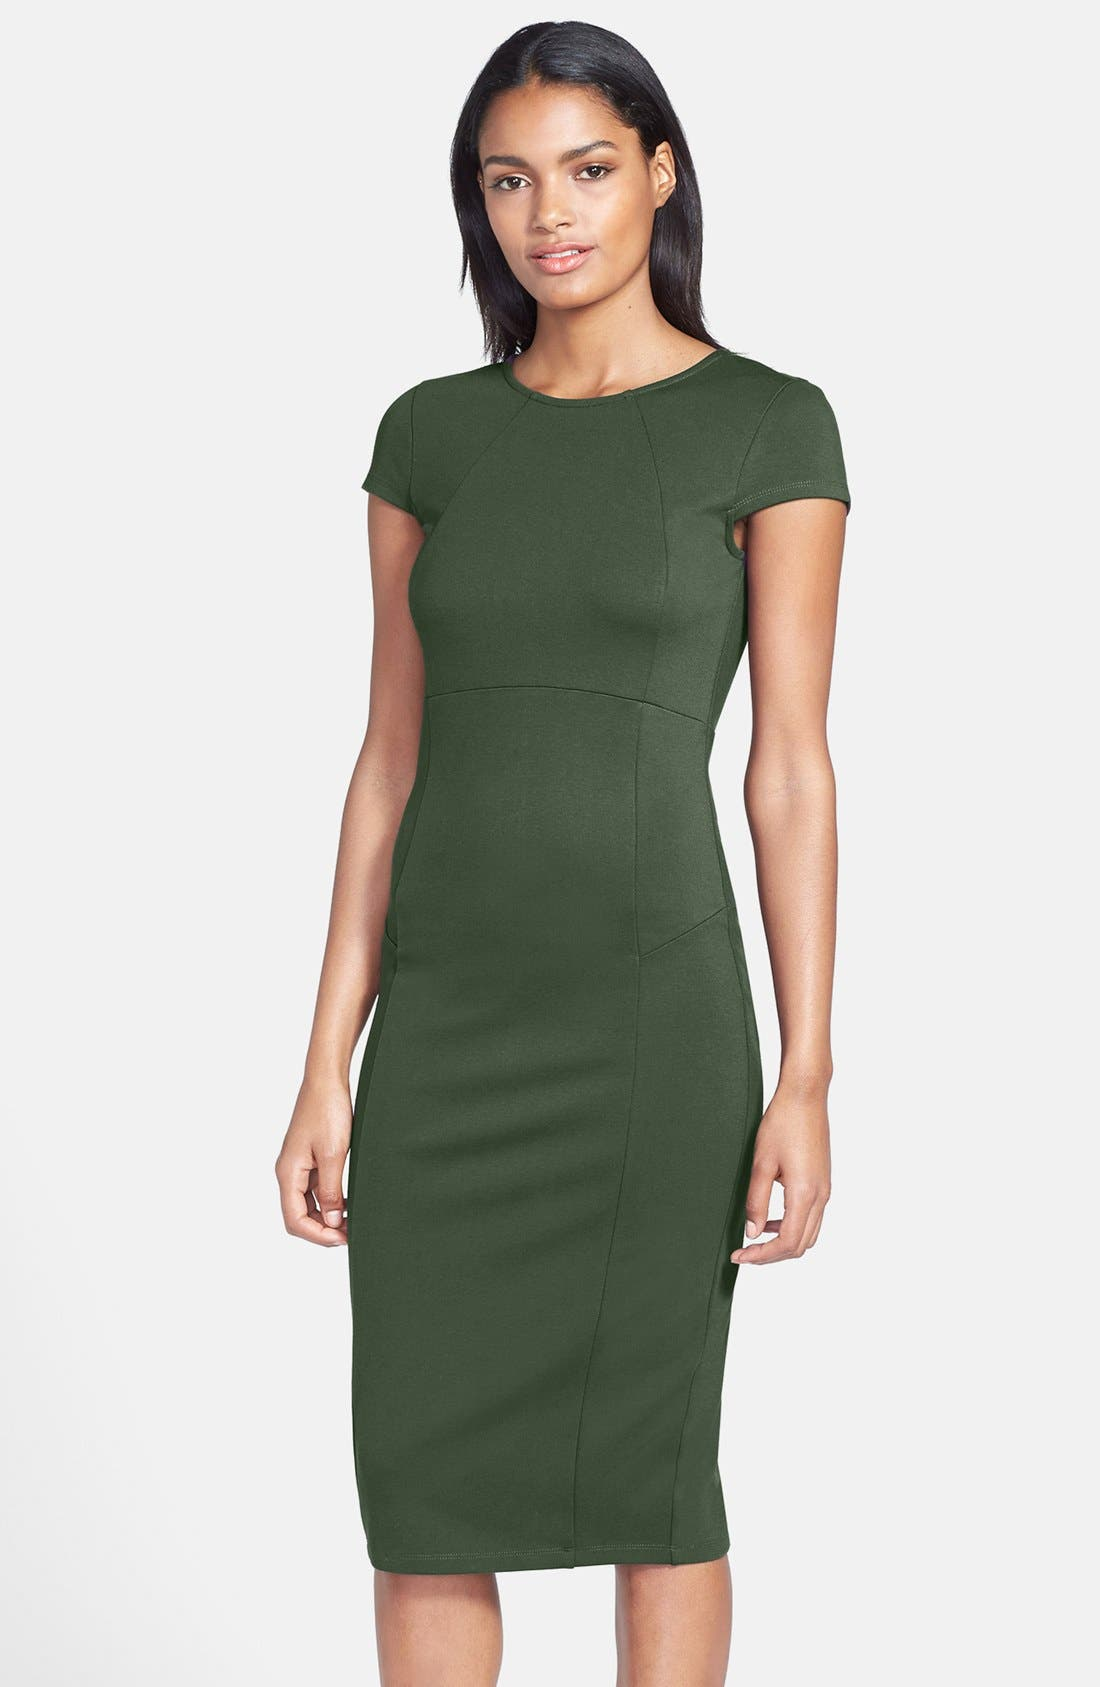 Alternate Image 1 Selected - Felicity & Coco Seamed Pencil Dress (Regular & Petite) (Nordstrom Exclusive)